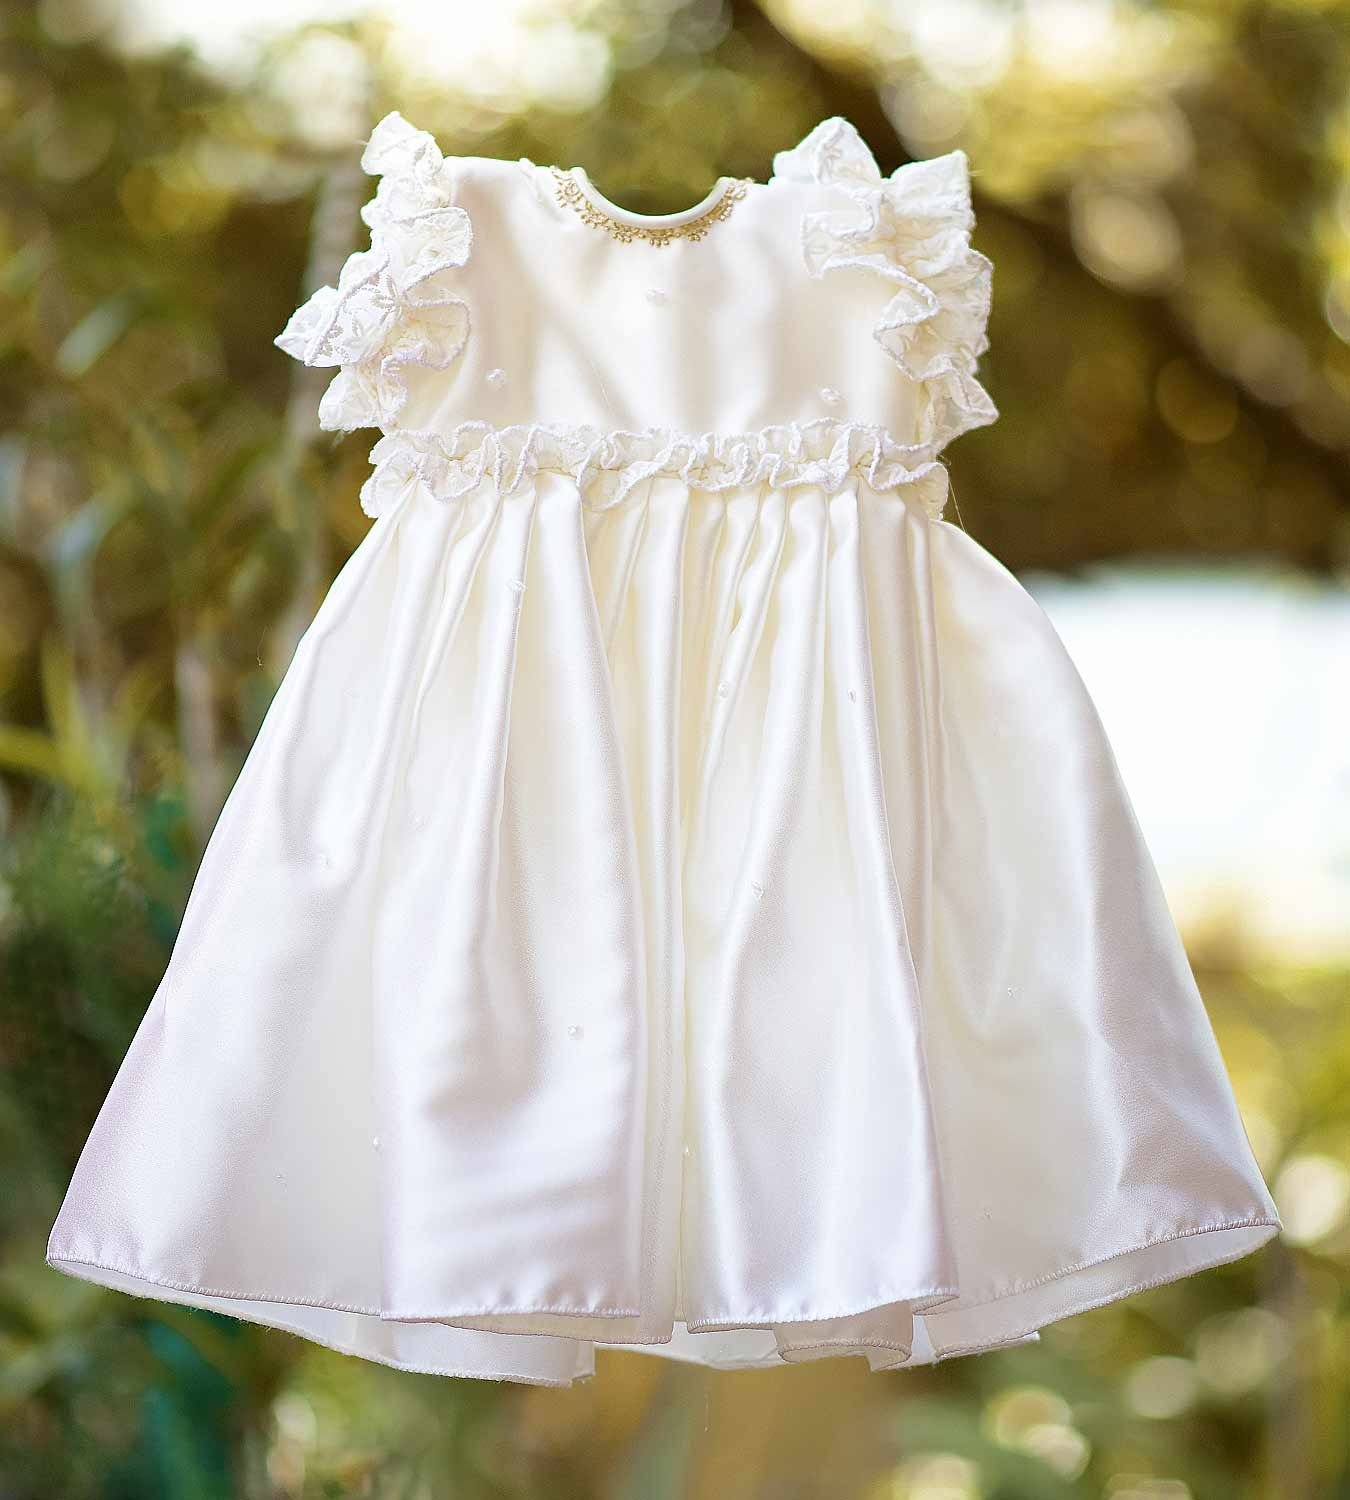 3dbd6664b Buy G 5001 Christening dress for baby girls online in india for your babies  special day. We welcome you to Navin creations exciting range of baptism  gowns.